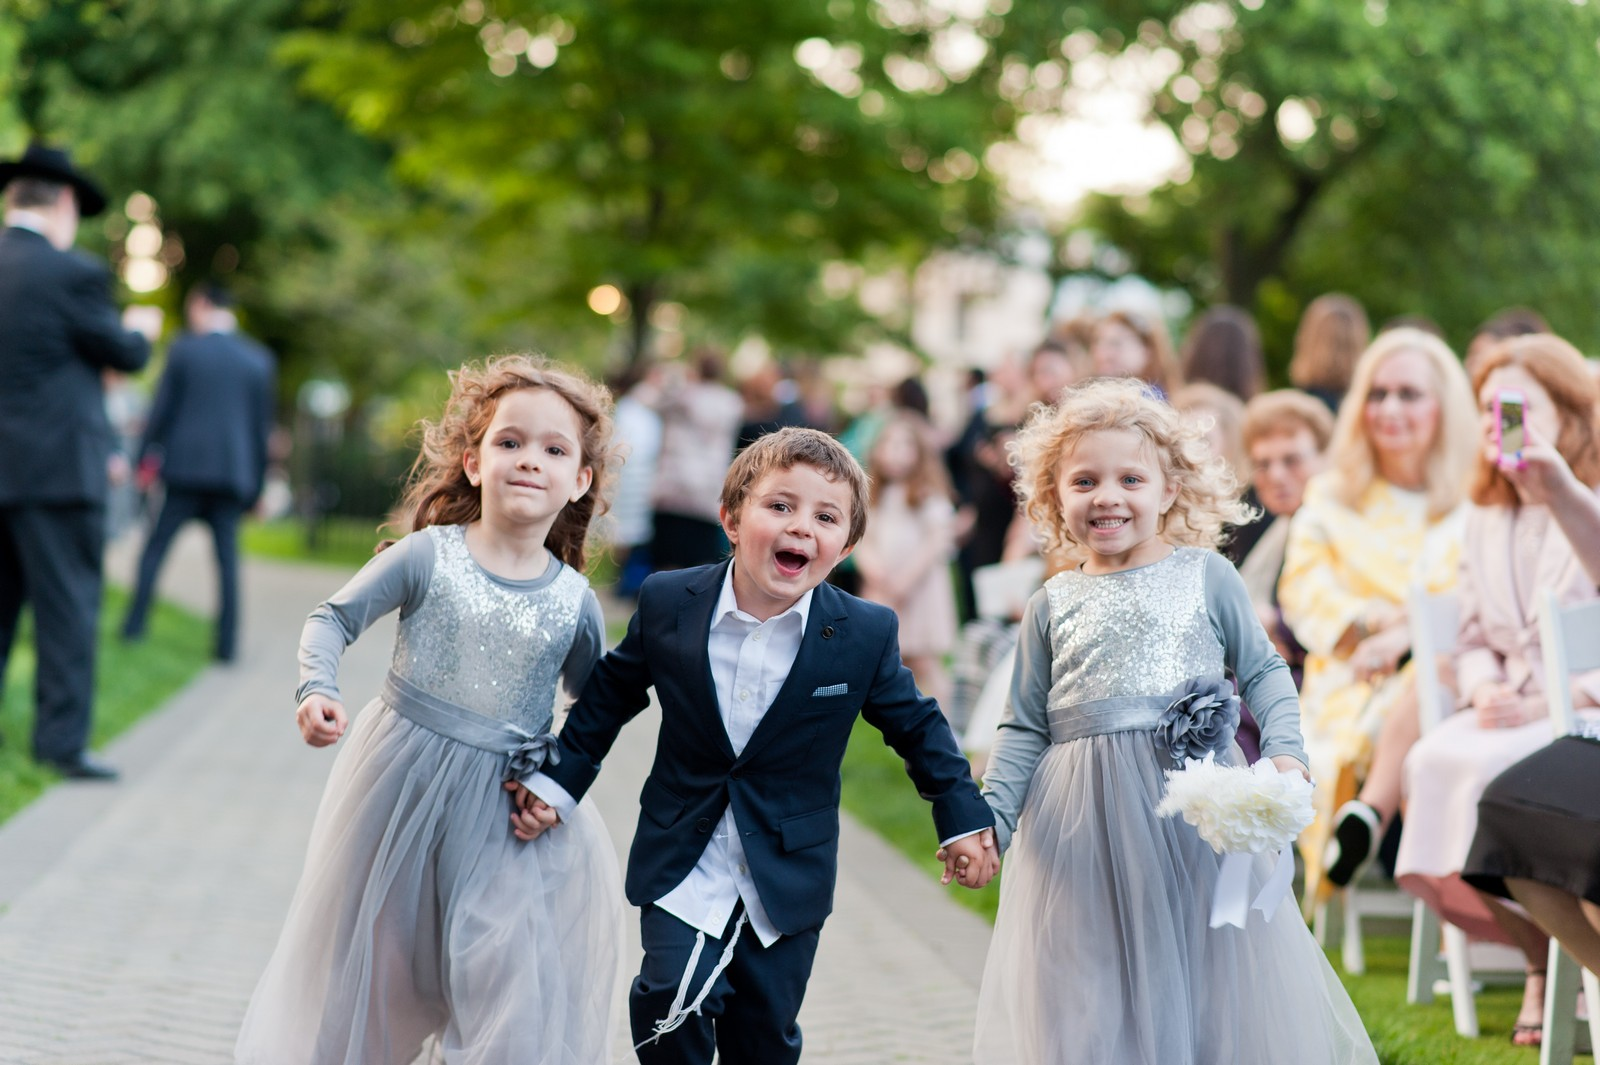 Orthodox Jewish Wedding, Dyker Beach Park and Golf Course, Brooklyn, New York, Photo by Chaim Schvarcz, Walking down the isle, nephews, neices, family